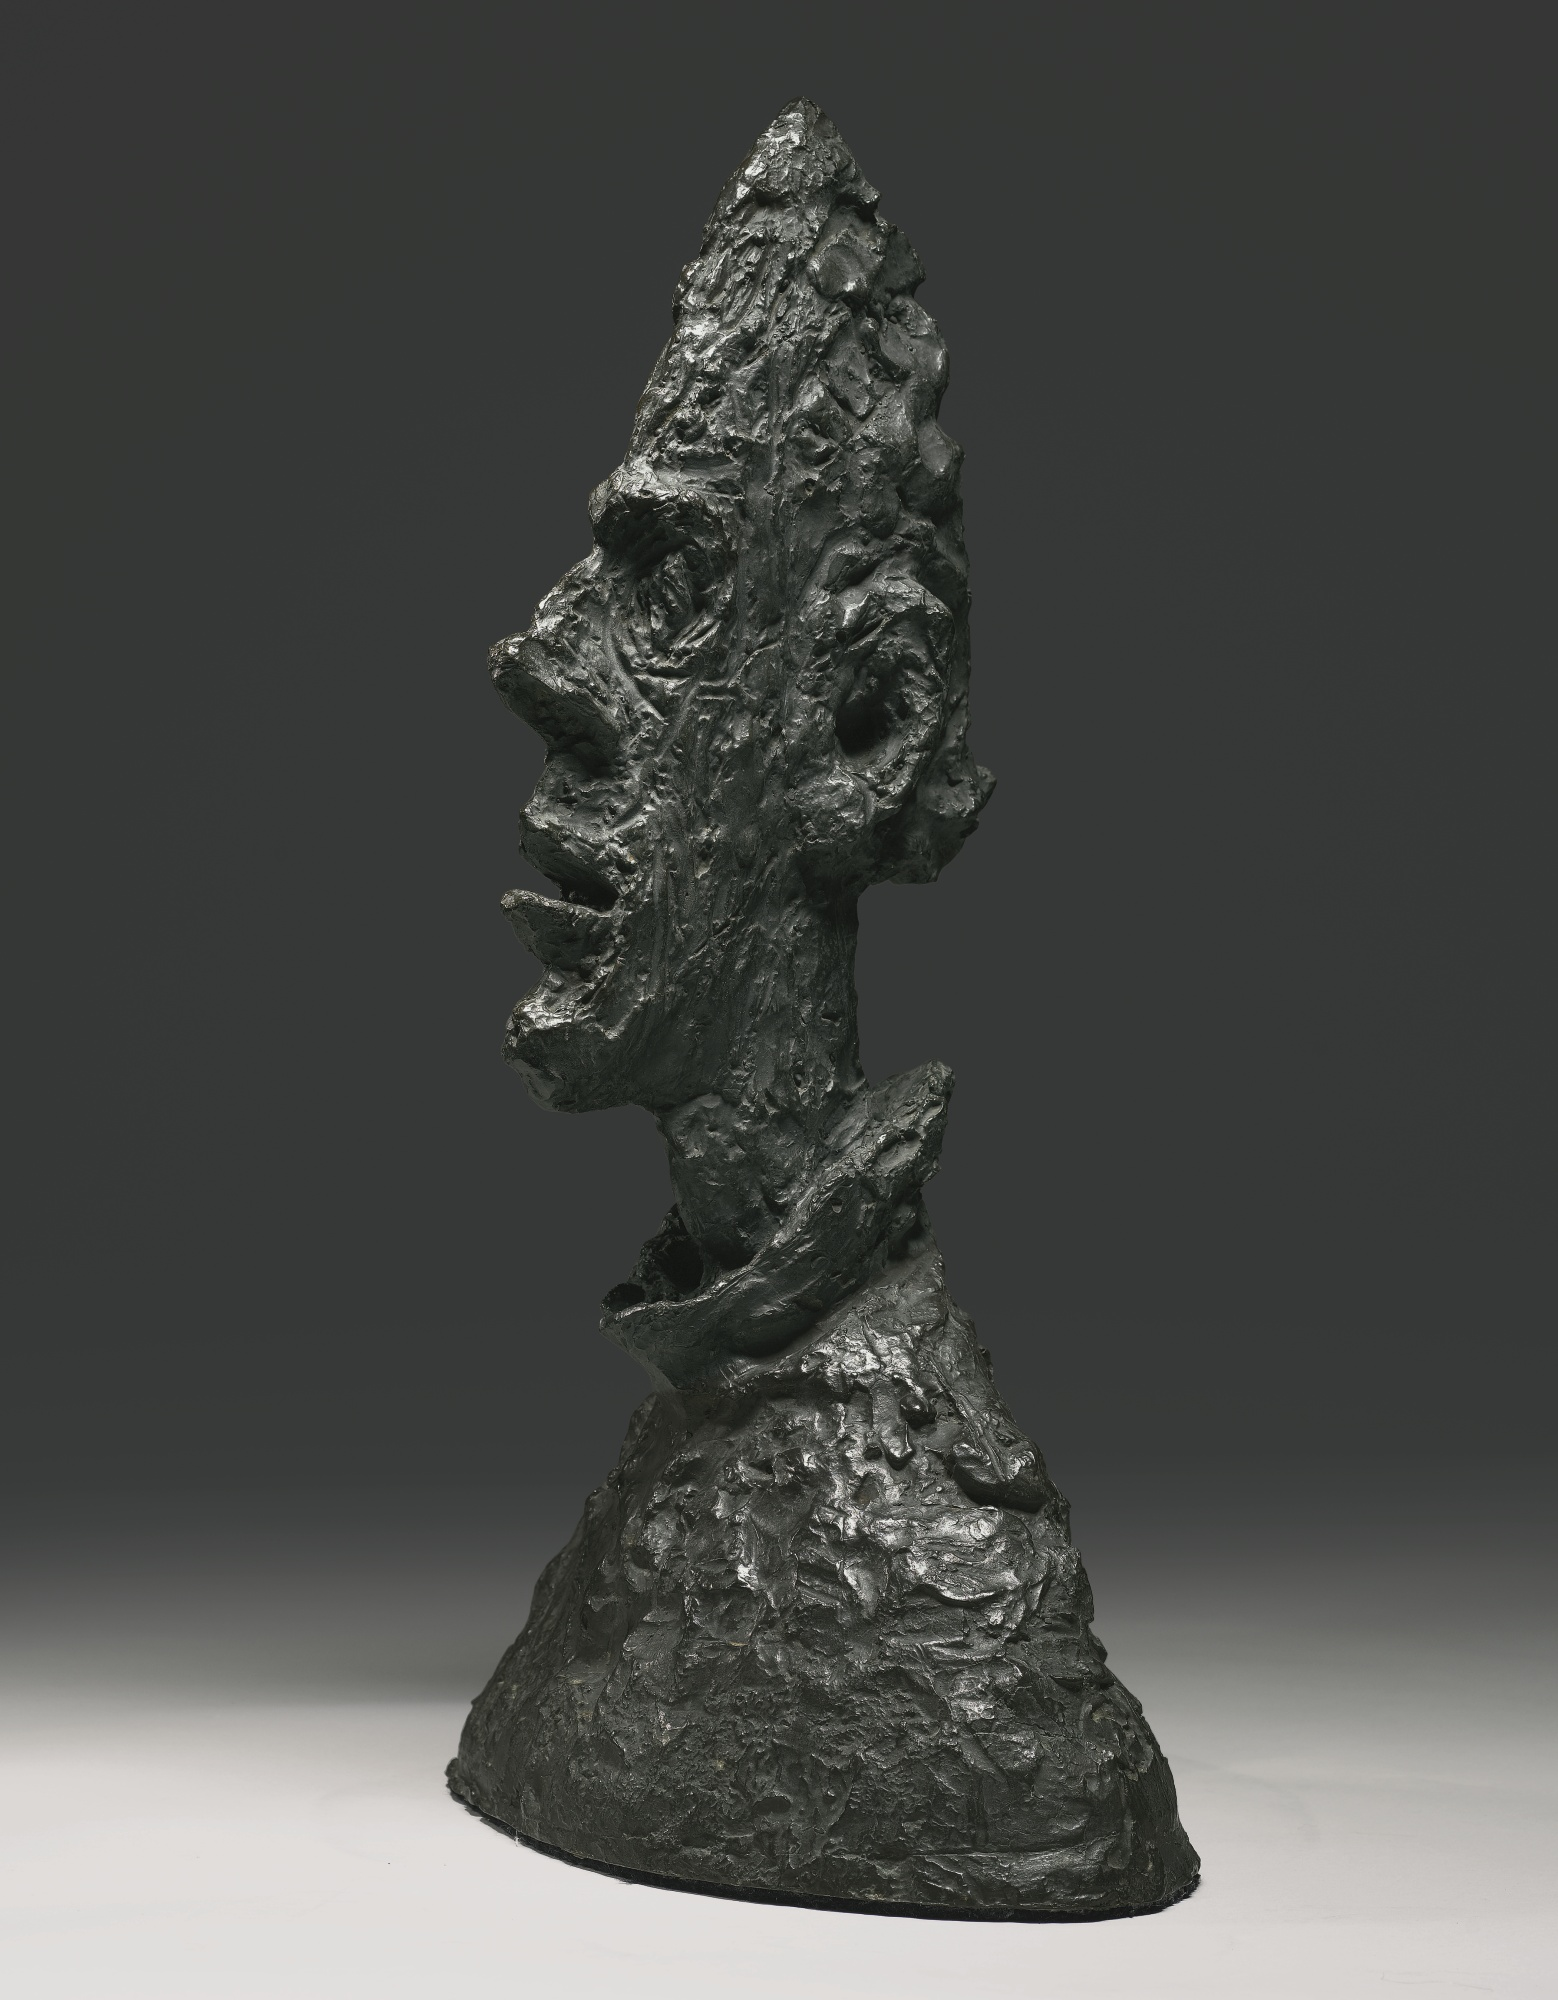 Giacometti picasso balla yes balla lead sotheby s - Bronze sculptures for sale ...